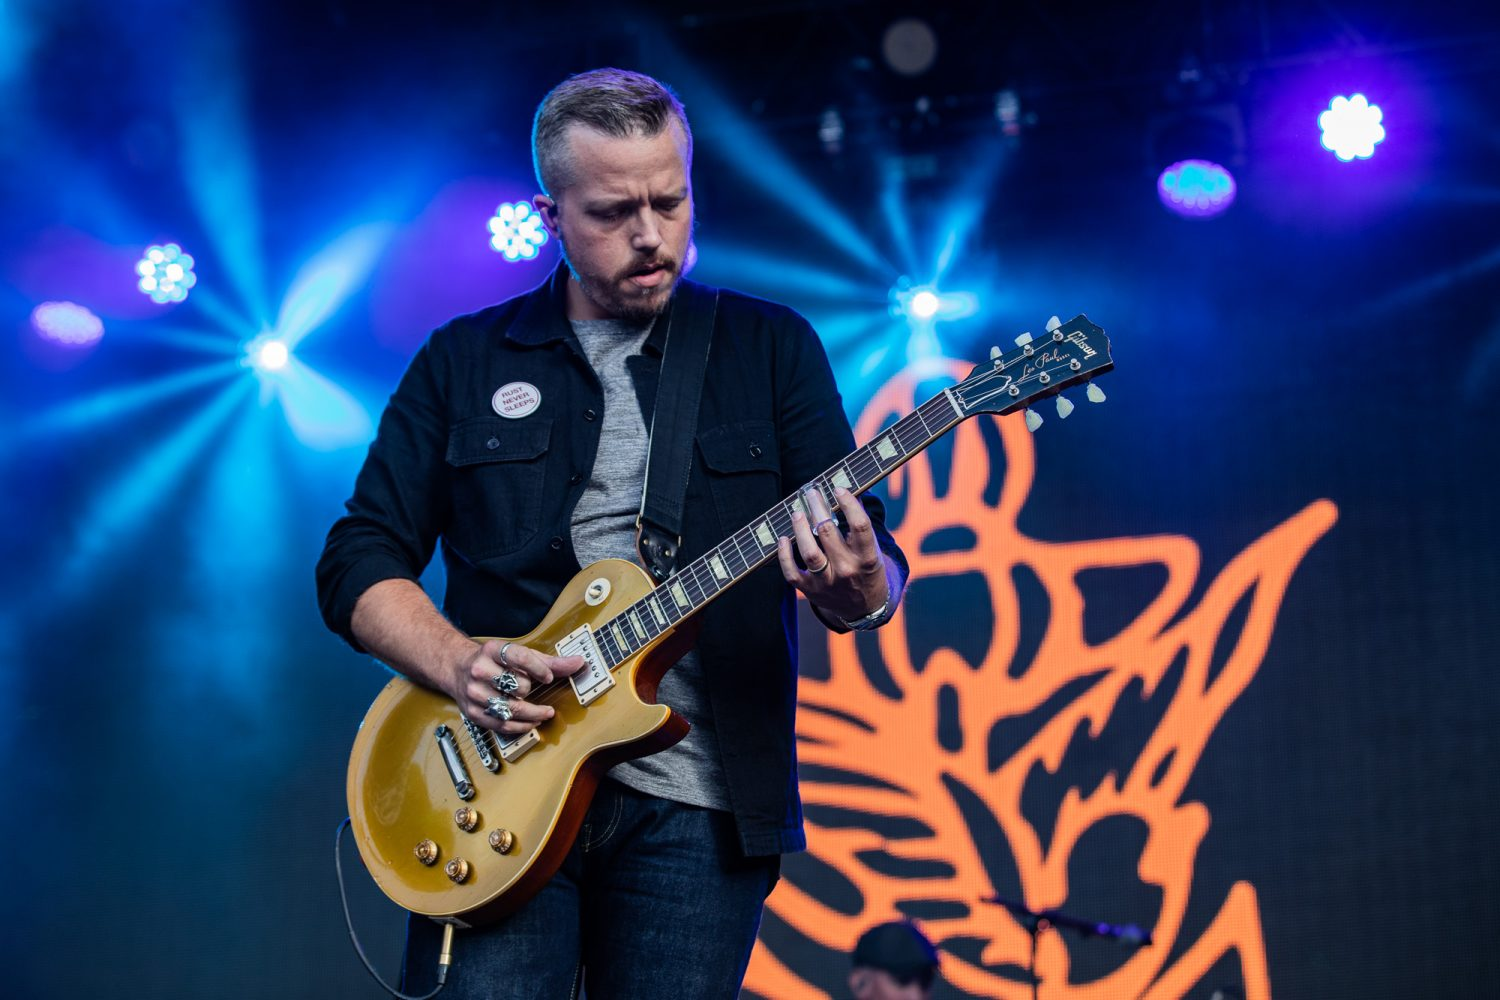 Jason Isbell and The 400 Unit @ Piknik i Parken 2018